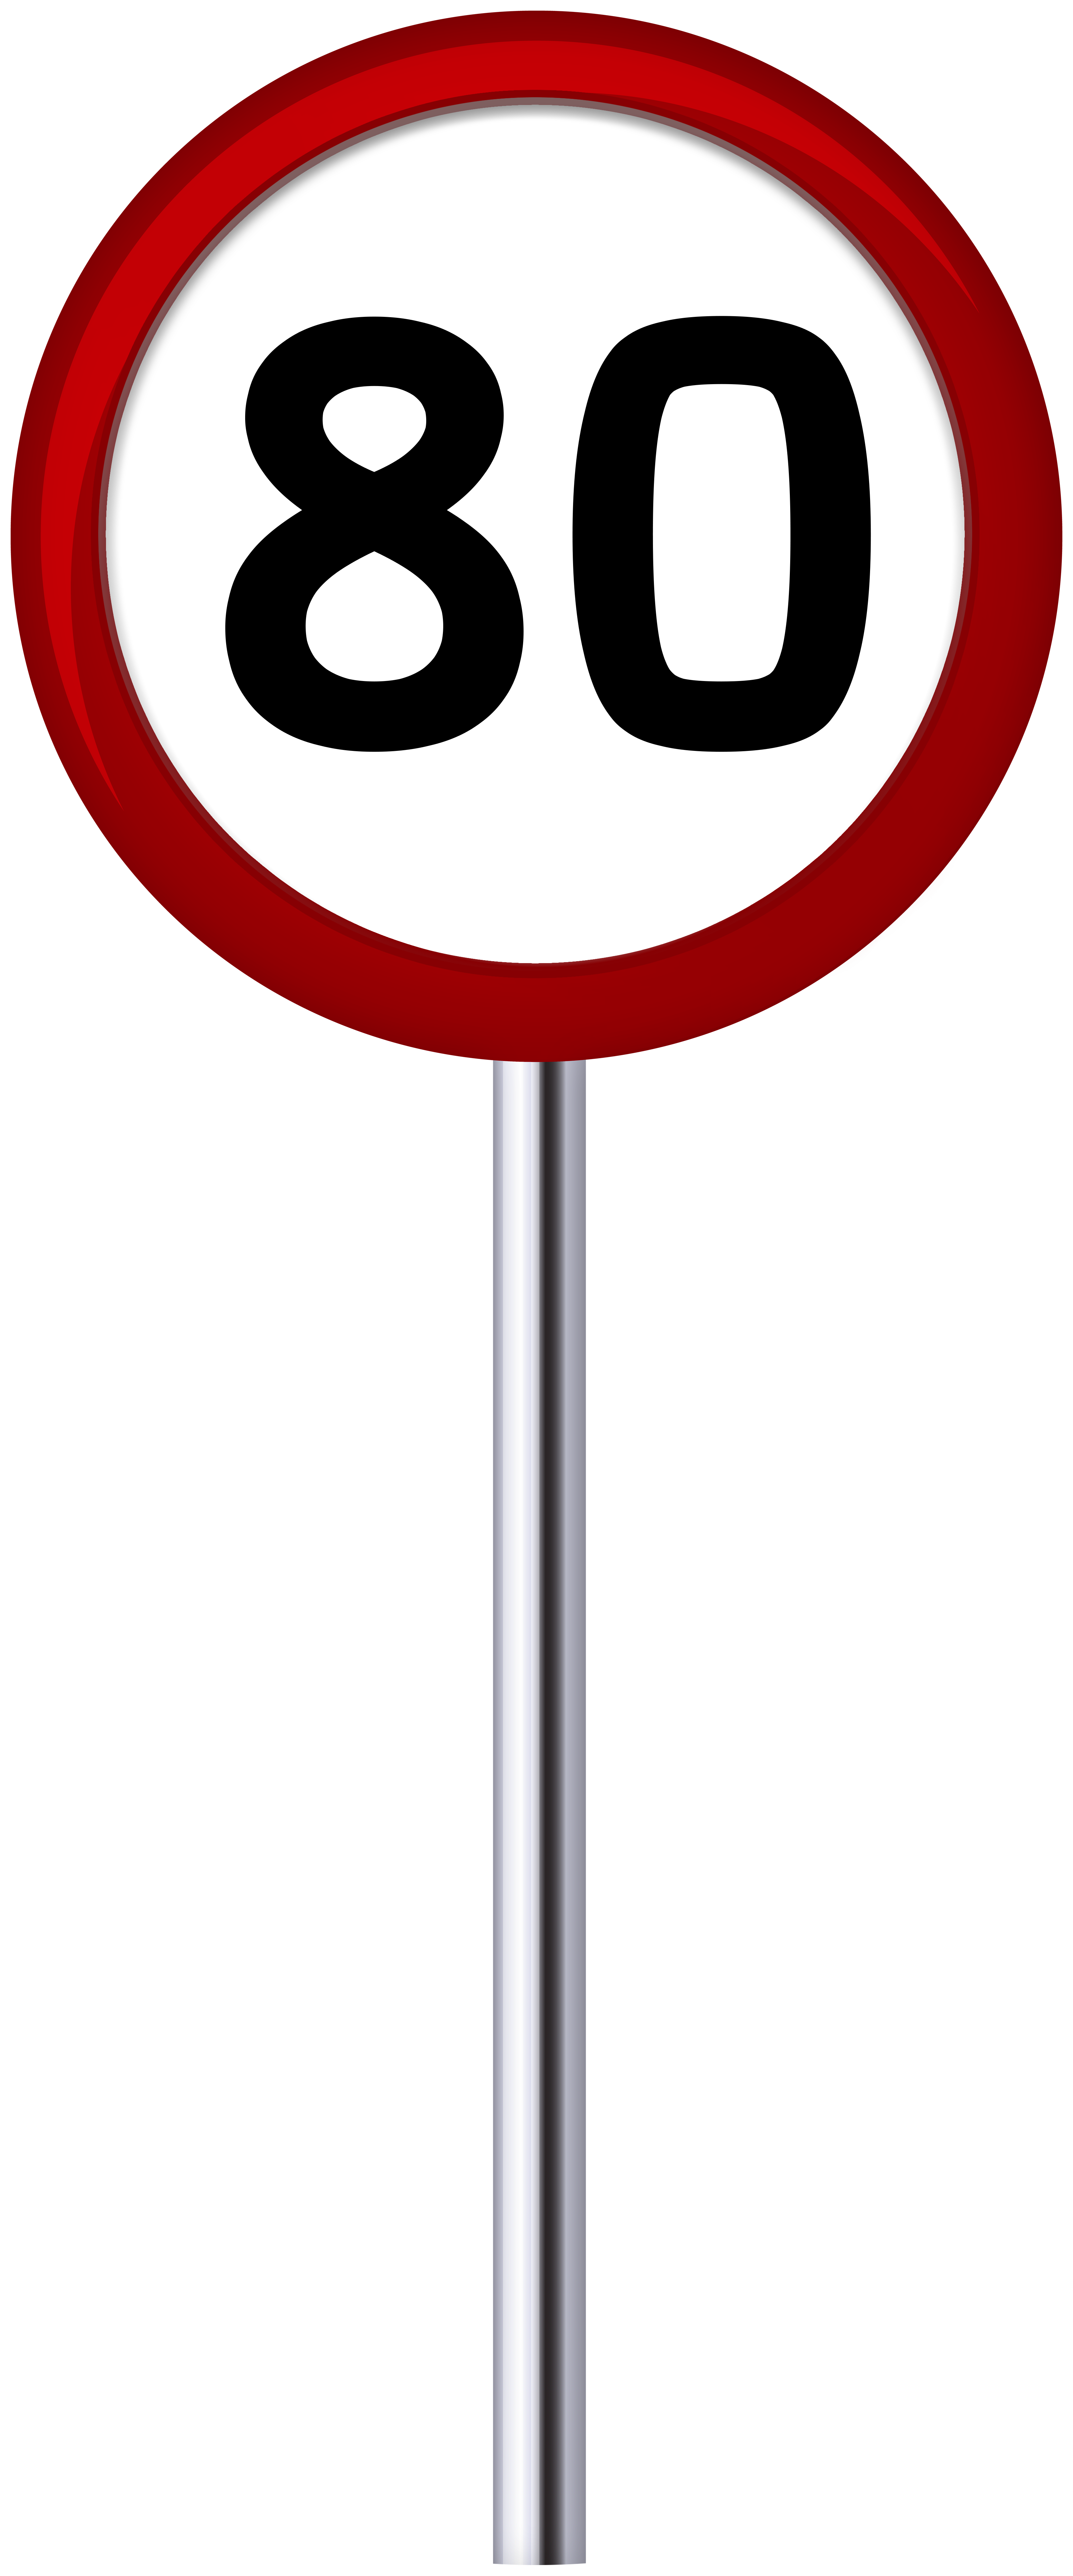 png transparent download 80 clipart sign. Traffic speed limit png